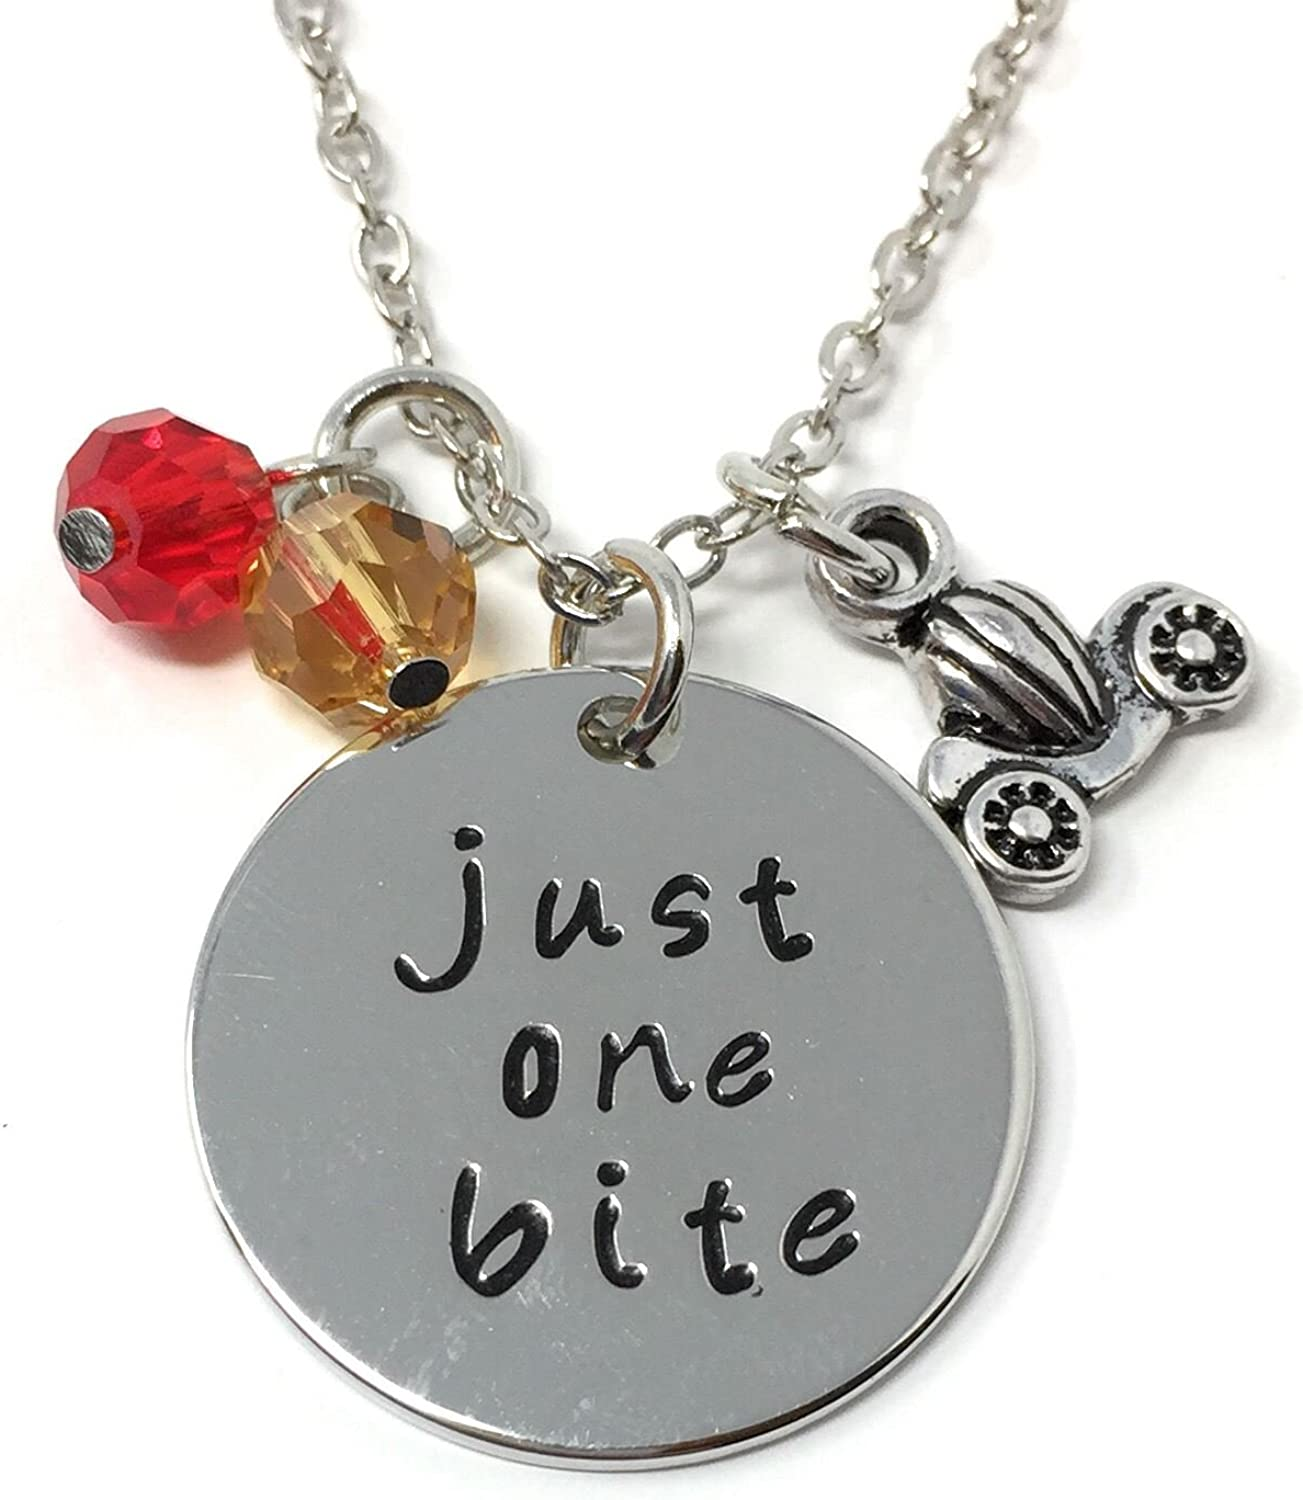 Cadoline Silver-Tone 'Just One Bite' Engraved Pendant Necklace 2.2cm Diameter with 18 Inch Chain Snow White Poison Apple